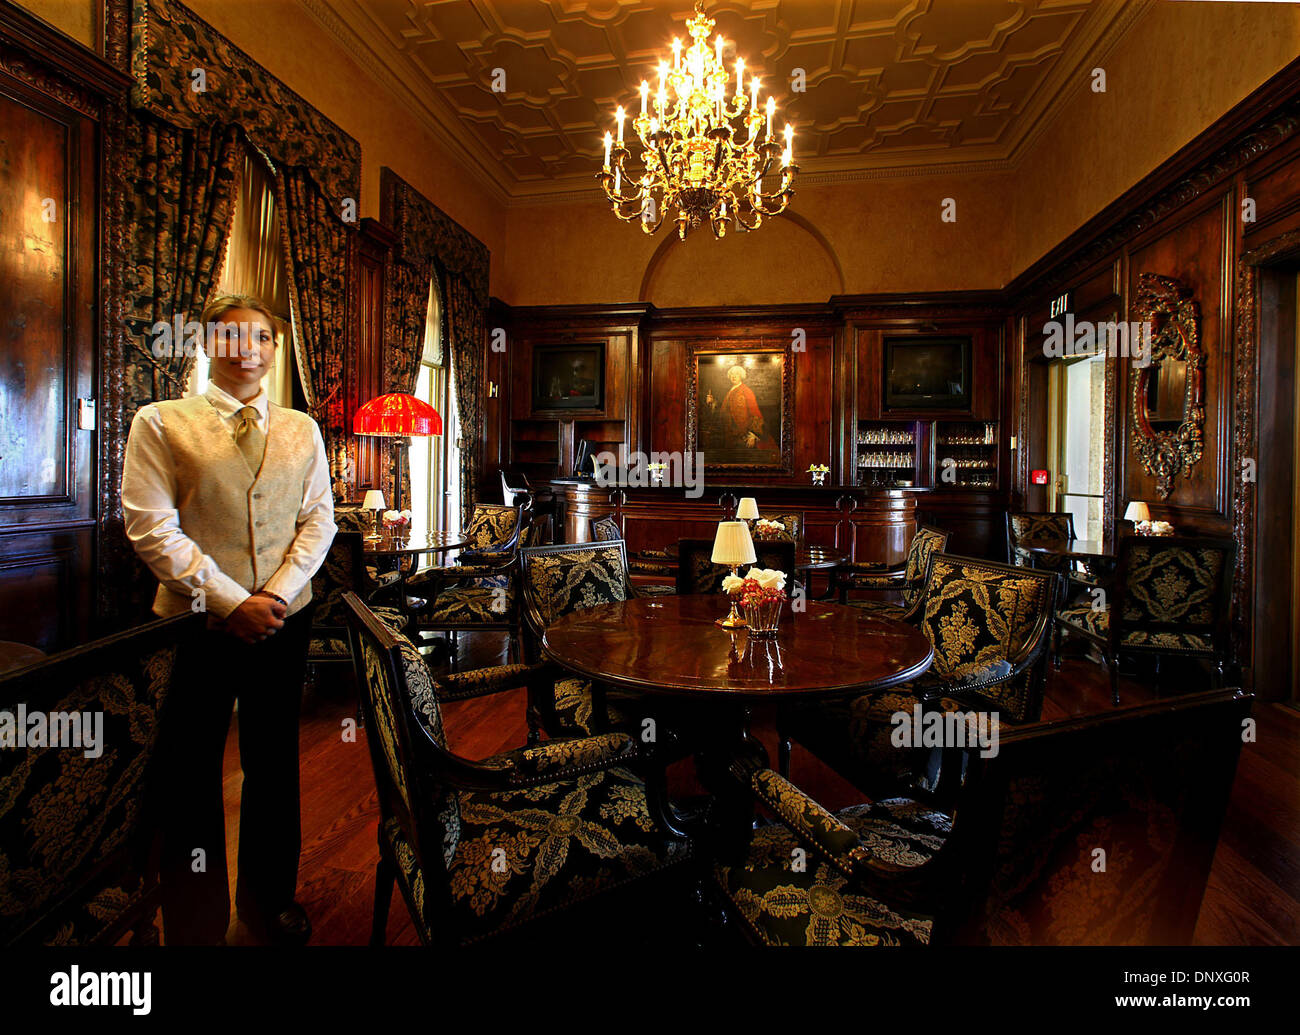 Dec 12, 2005; Palm Beach, FL, USA; US Tabloid Sales OUT!   US MAGS and TV CALL 1-310-397-9165 or (561) 392- 7856 for Price!  The bar inside Mar-A-Lago.  Photos of the interior and exterior of Donald Trump's Palm Beach Island home ''Mar-A-Lago.'' Mandatory Credit: Photo by Damon Higgins/Palm Beach Post/ZUMA Press. (©) Copyright 2005 by Palm Beach Post - Stock Image